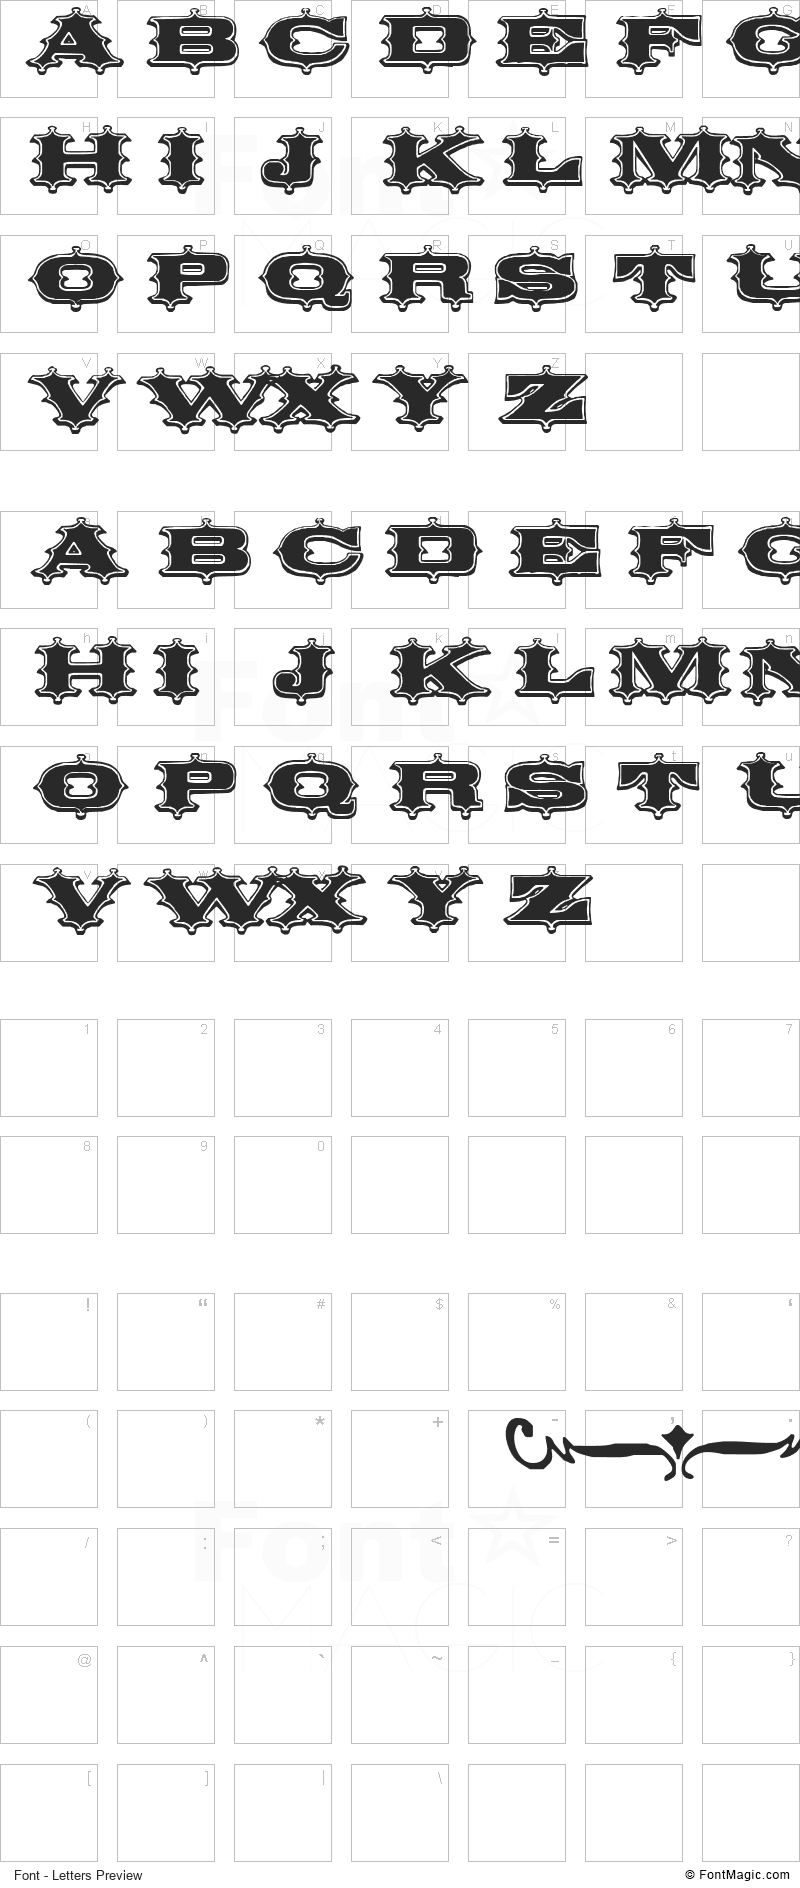 Circus Ornate Font - All Latters Preview Chart